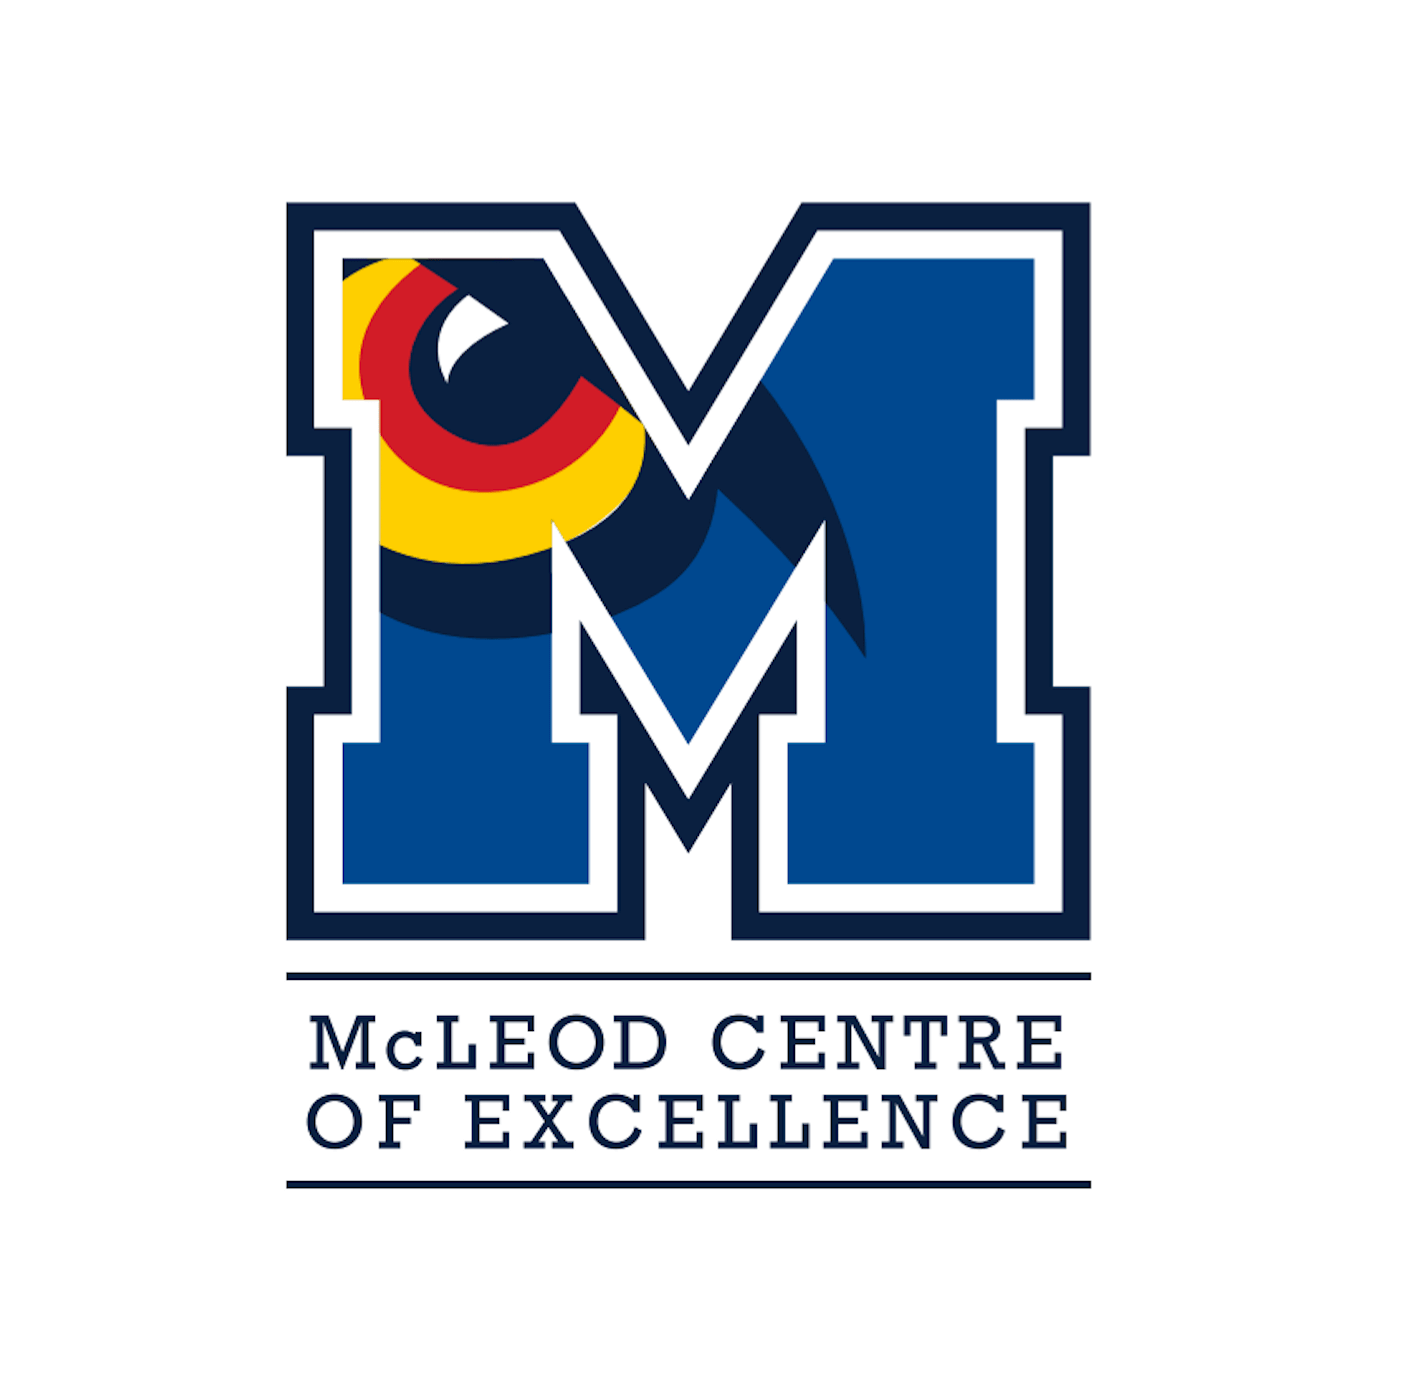 McLeod Centre of Excellence